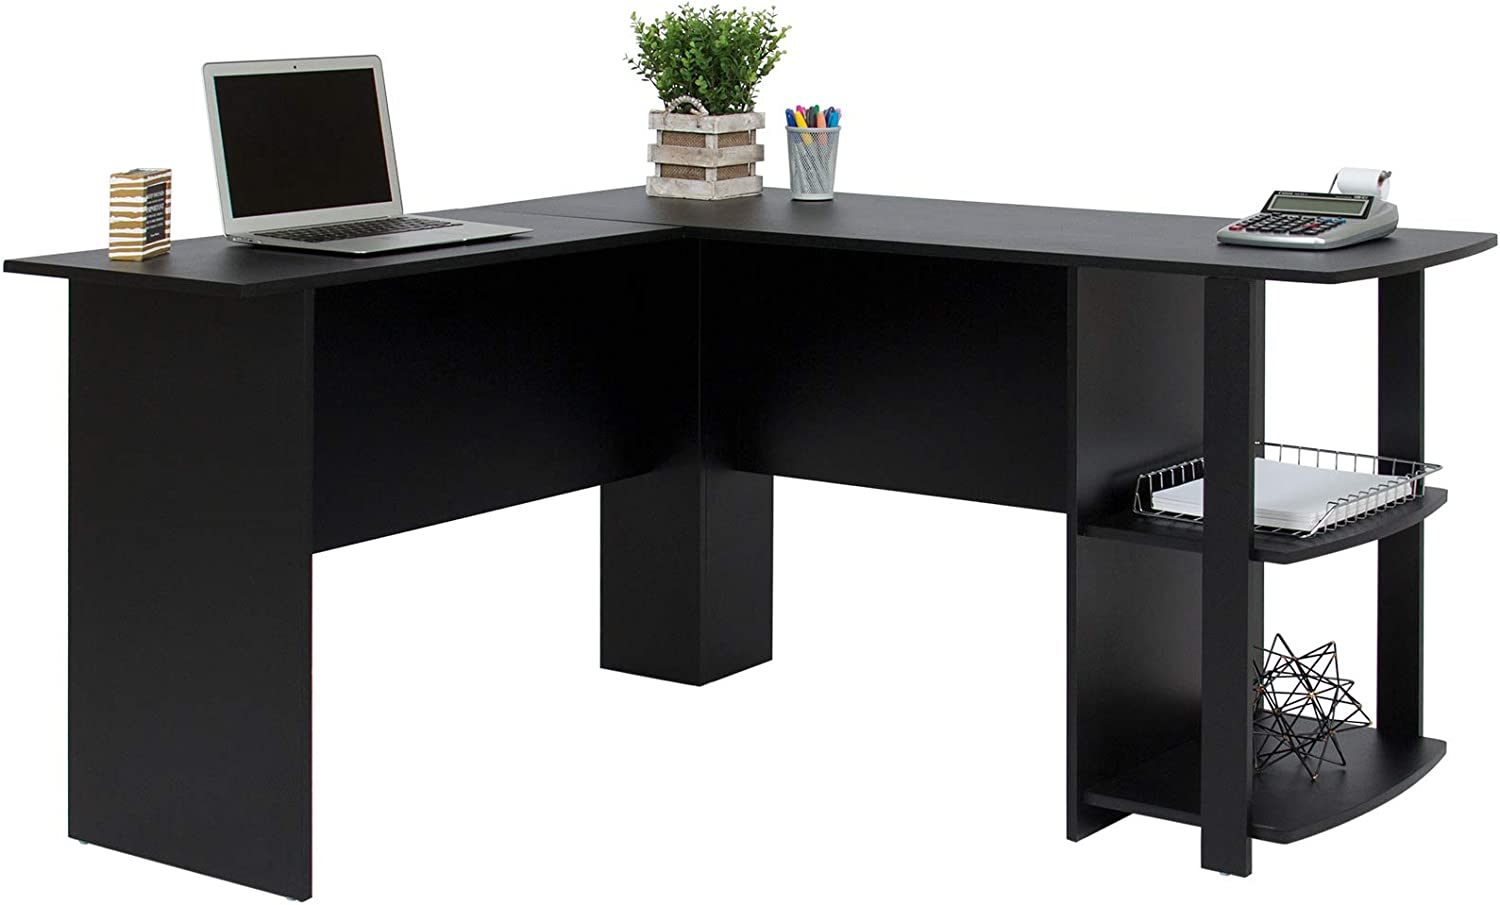 Best Choice Products L-Shaped Corner Computer Desk Study Workstation Furniture for Home, Office w/ 2 Open Storage Bookshelves - Black